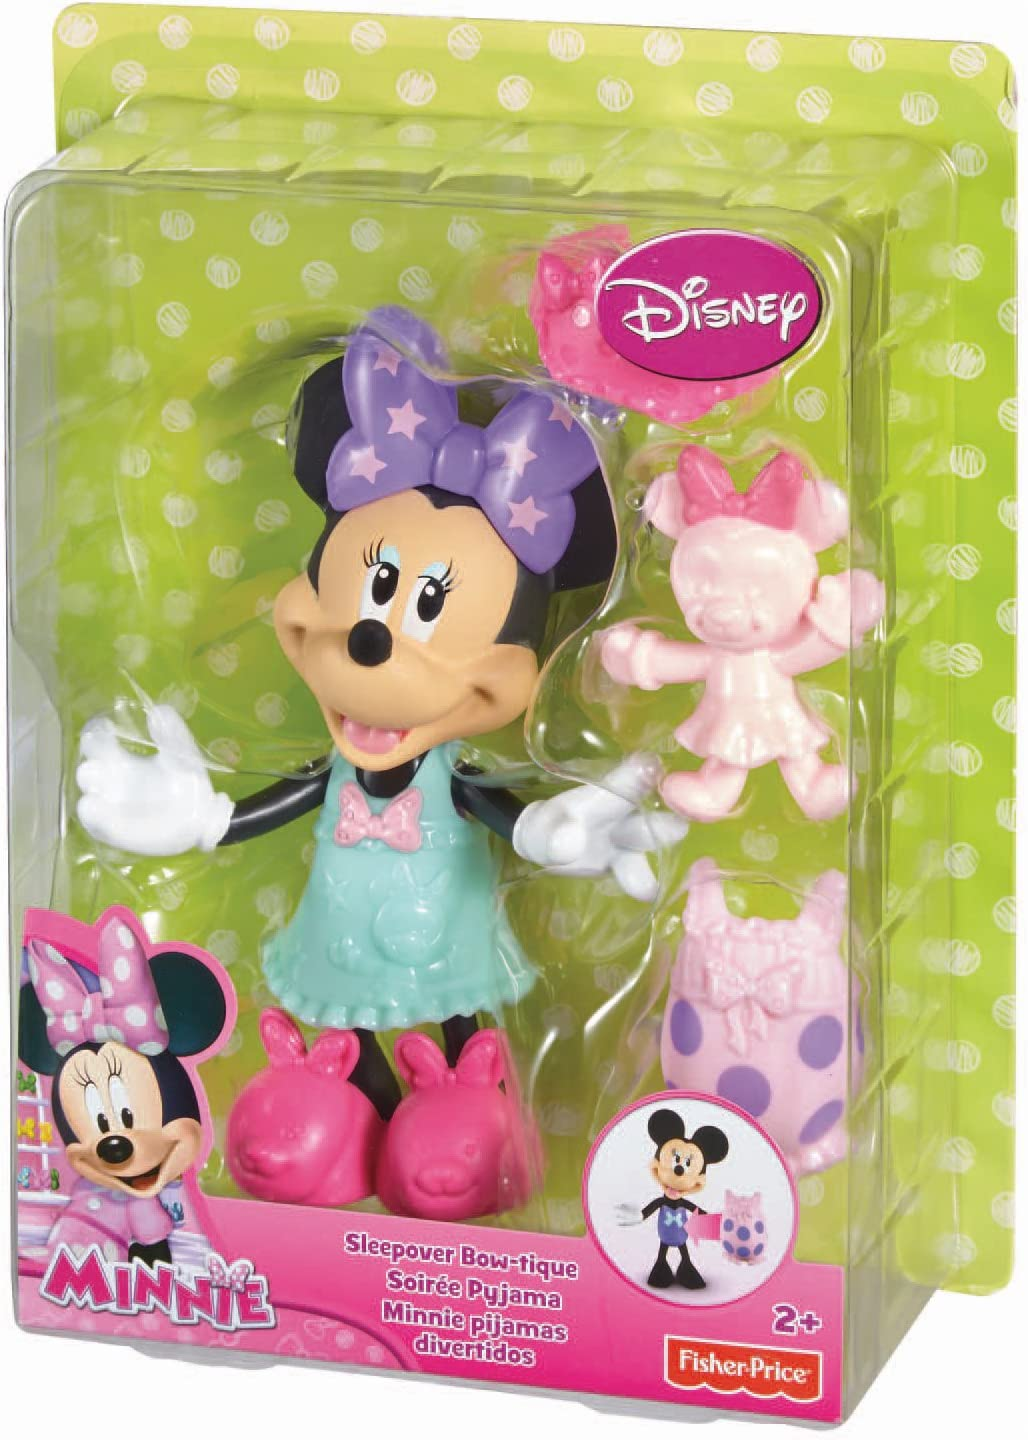 Fisher-Price Disneys Sleep Over Bowtique Minnie Mouse Fisher Price X5168